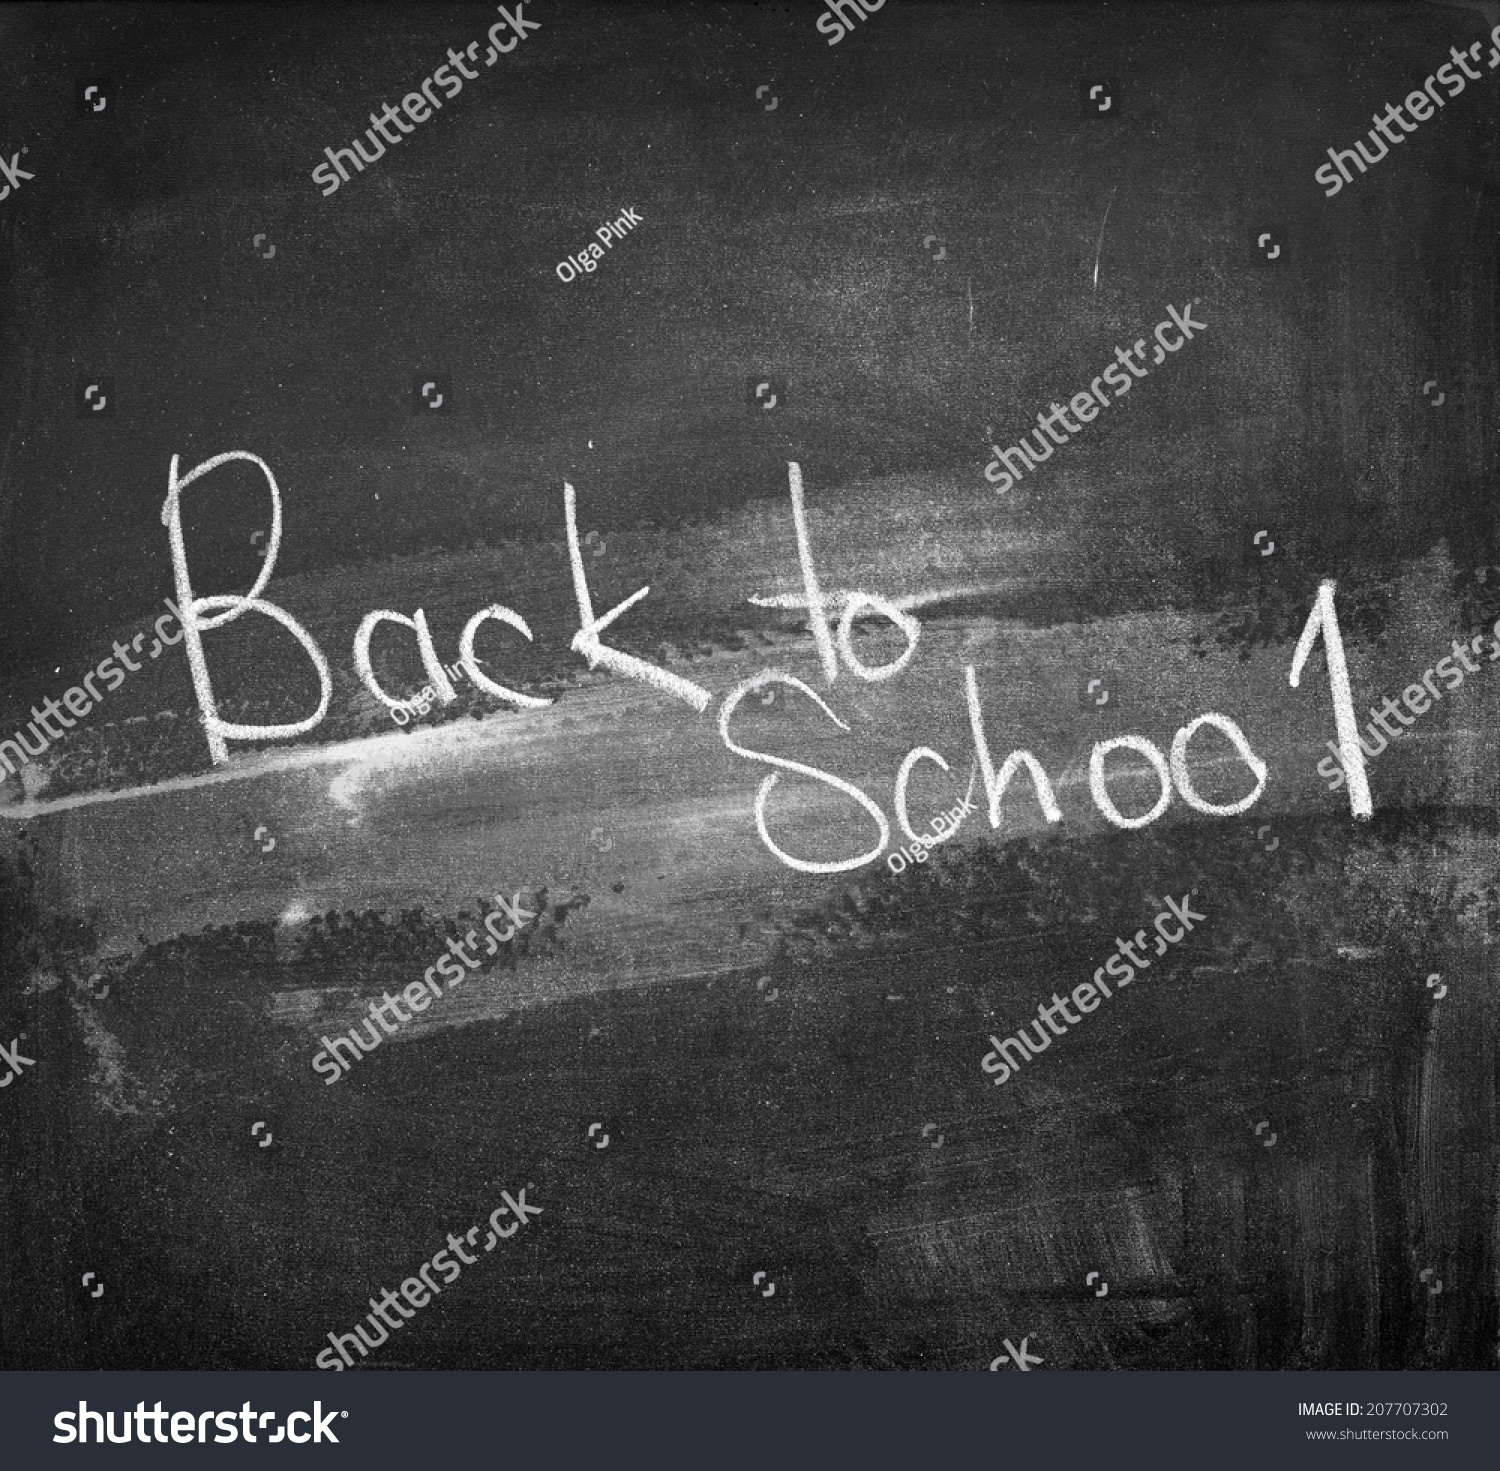 back to school written on black chalkboard school theme vintage